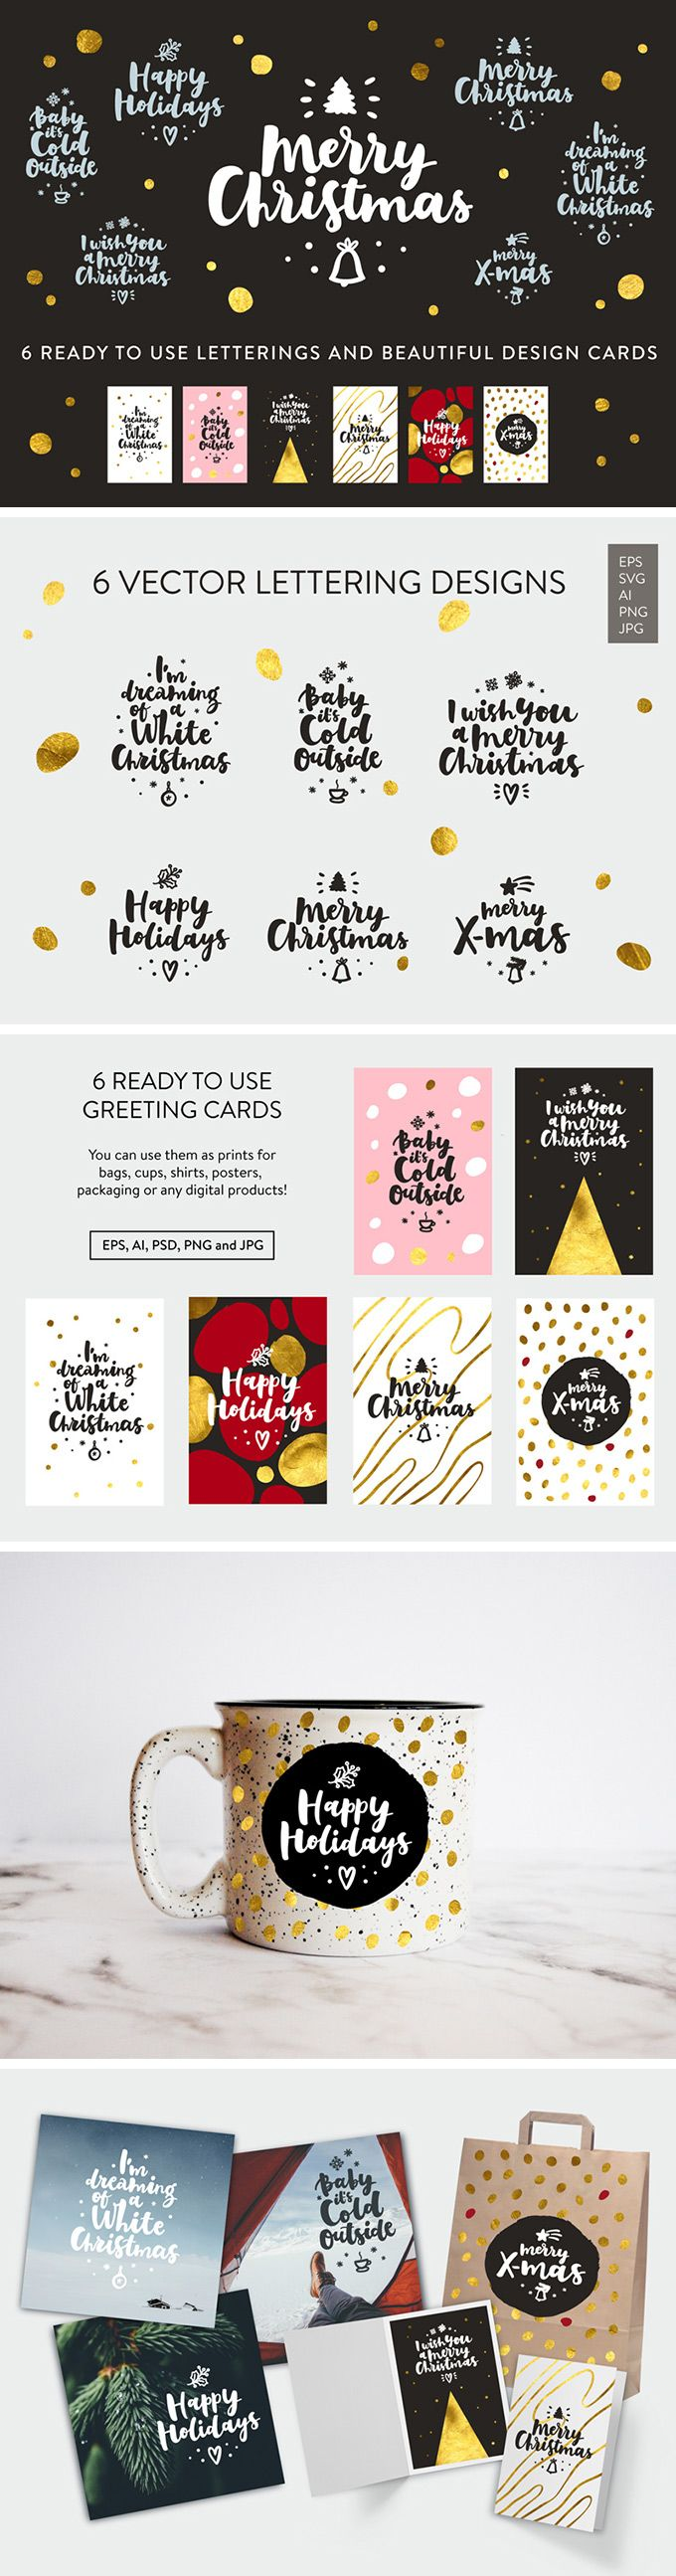 free ecard christmas party invitations%0A Free Merry Christmas Lettering  u     a set of beautiful Christmas lettering  compositions and printready